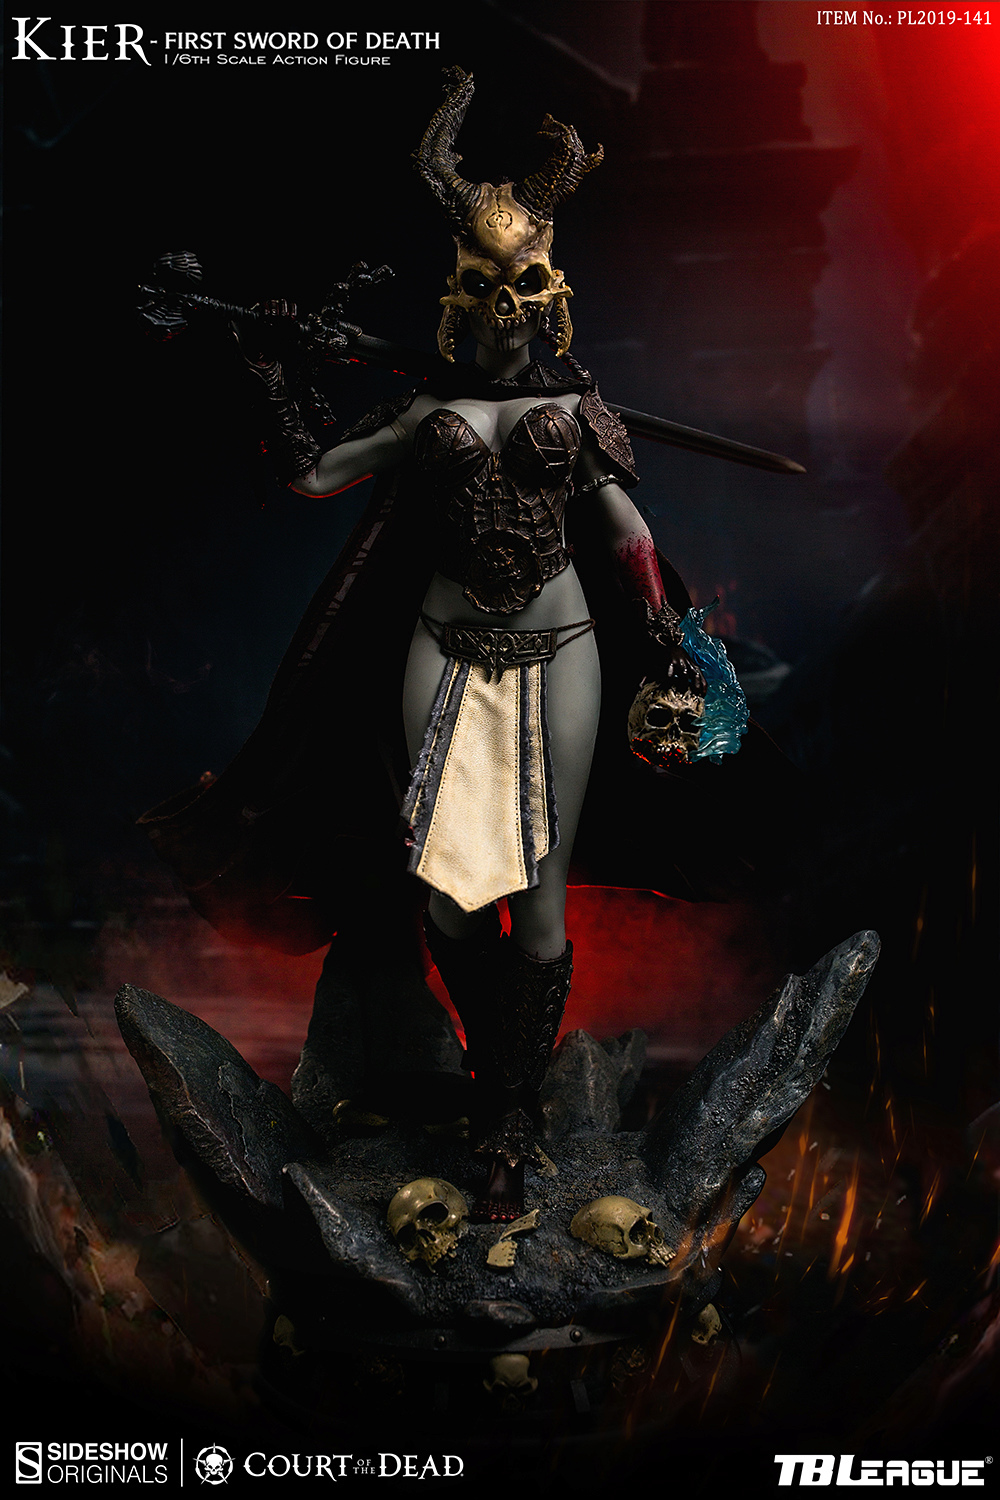 tbleague - NEW PRODUCT: TBLeague & Sideshow: 1/6 Court of the Dead - Valkyrie Cole / Kier movable doll (PL2019-141) 16260110